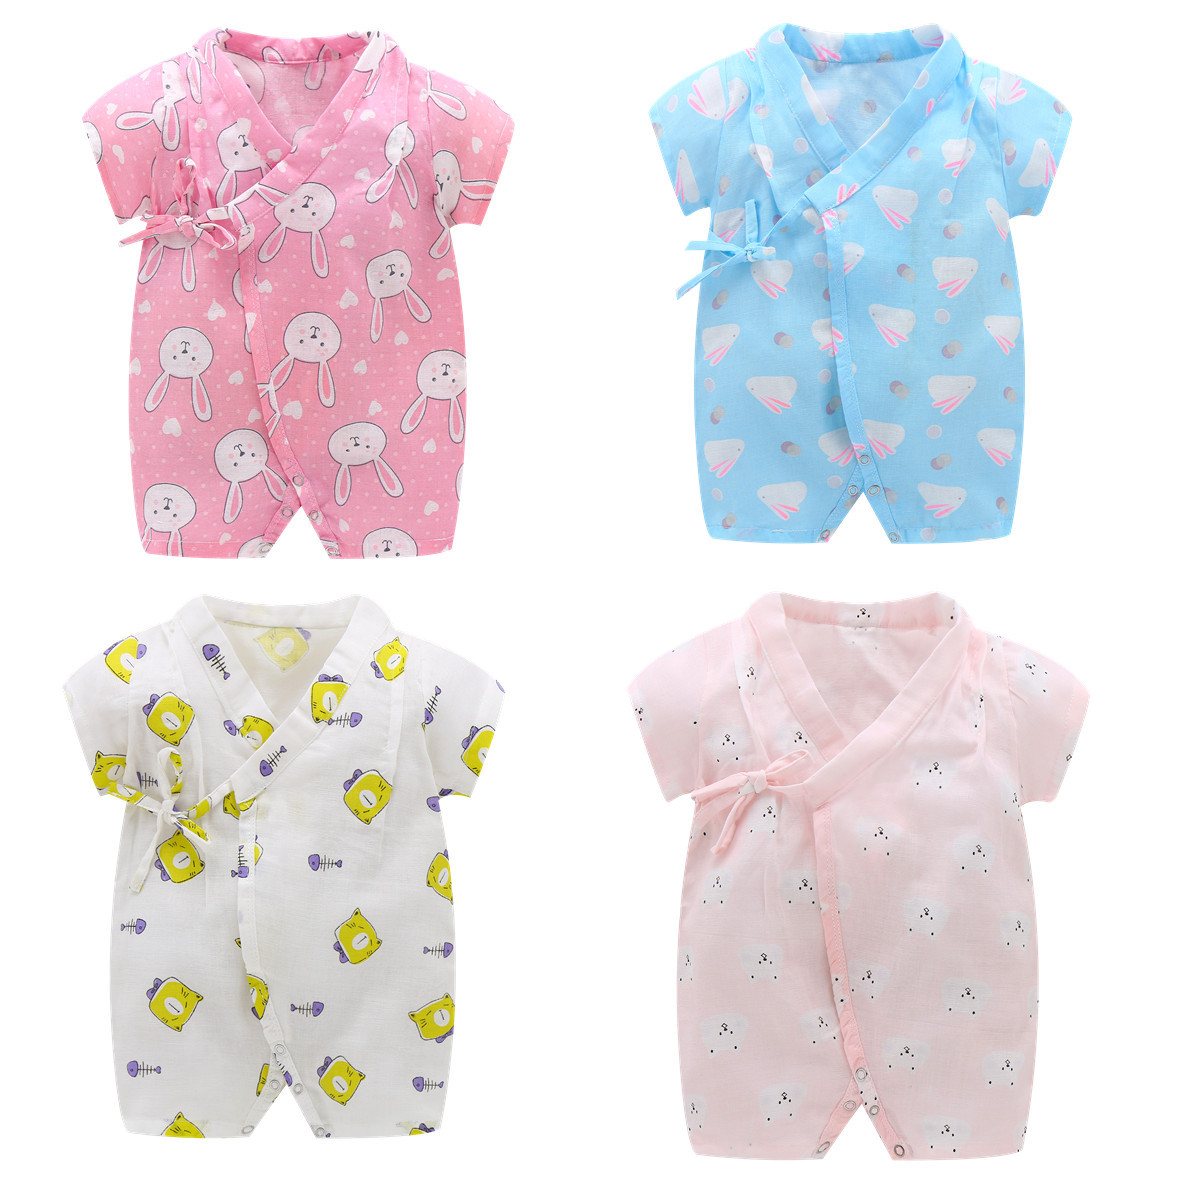 Summer Baby Kimono Rompers Girls Boys Floral Japanese Tracksuit Kids Casual Newborn Infants babies Jumpsuits